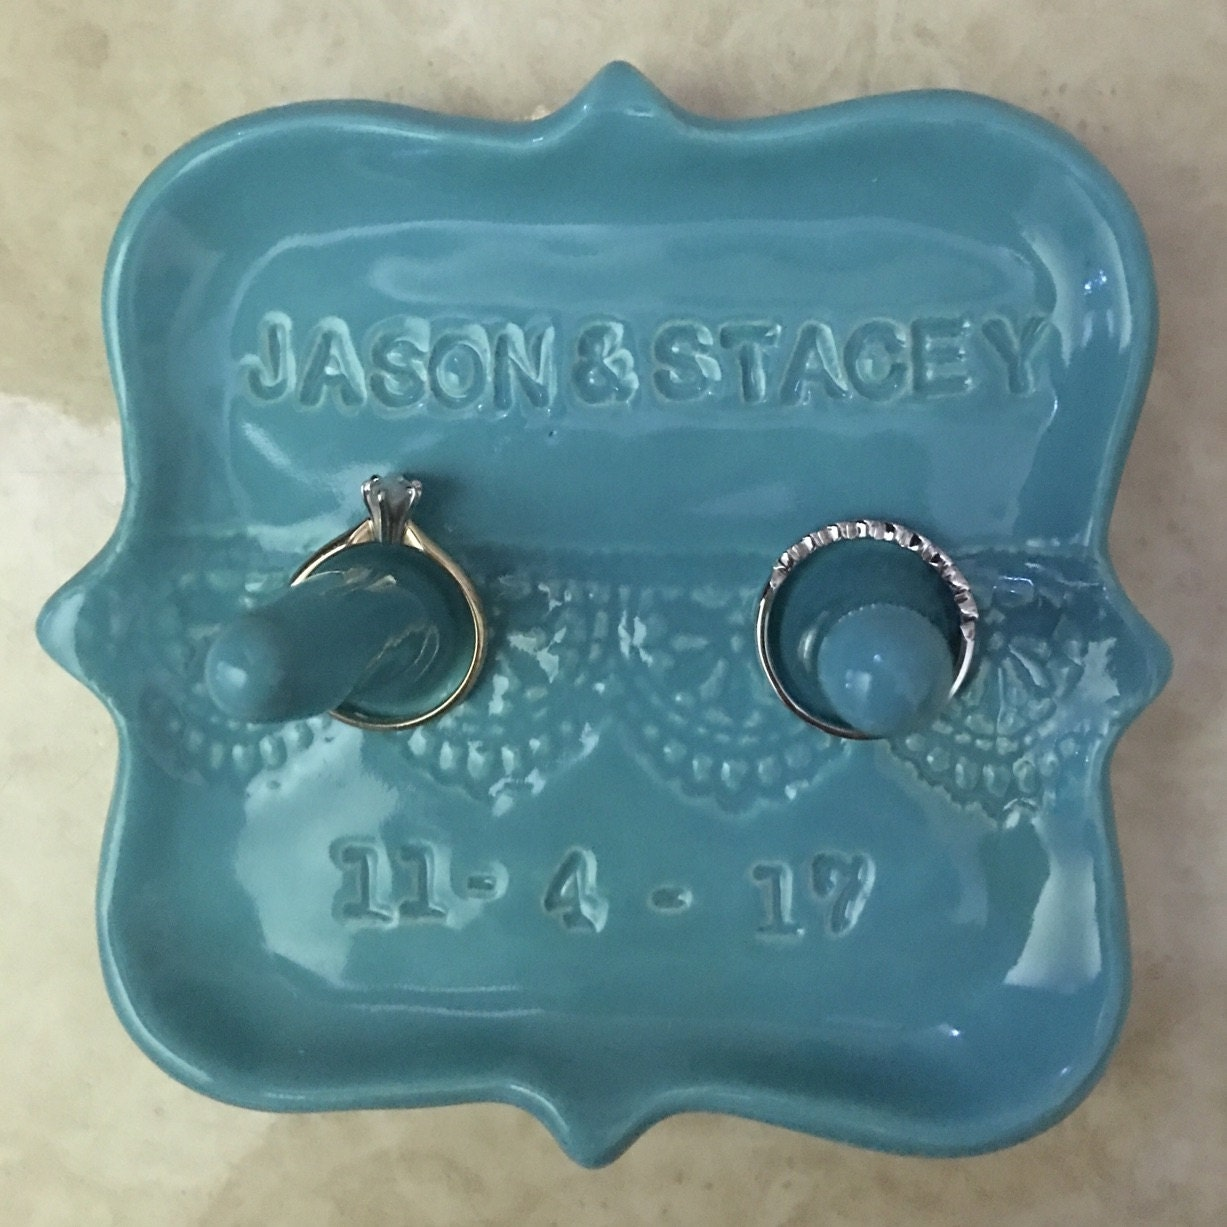 Stacey Irsay added a photo of their purchase